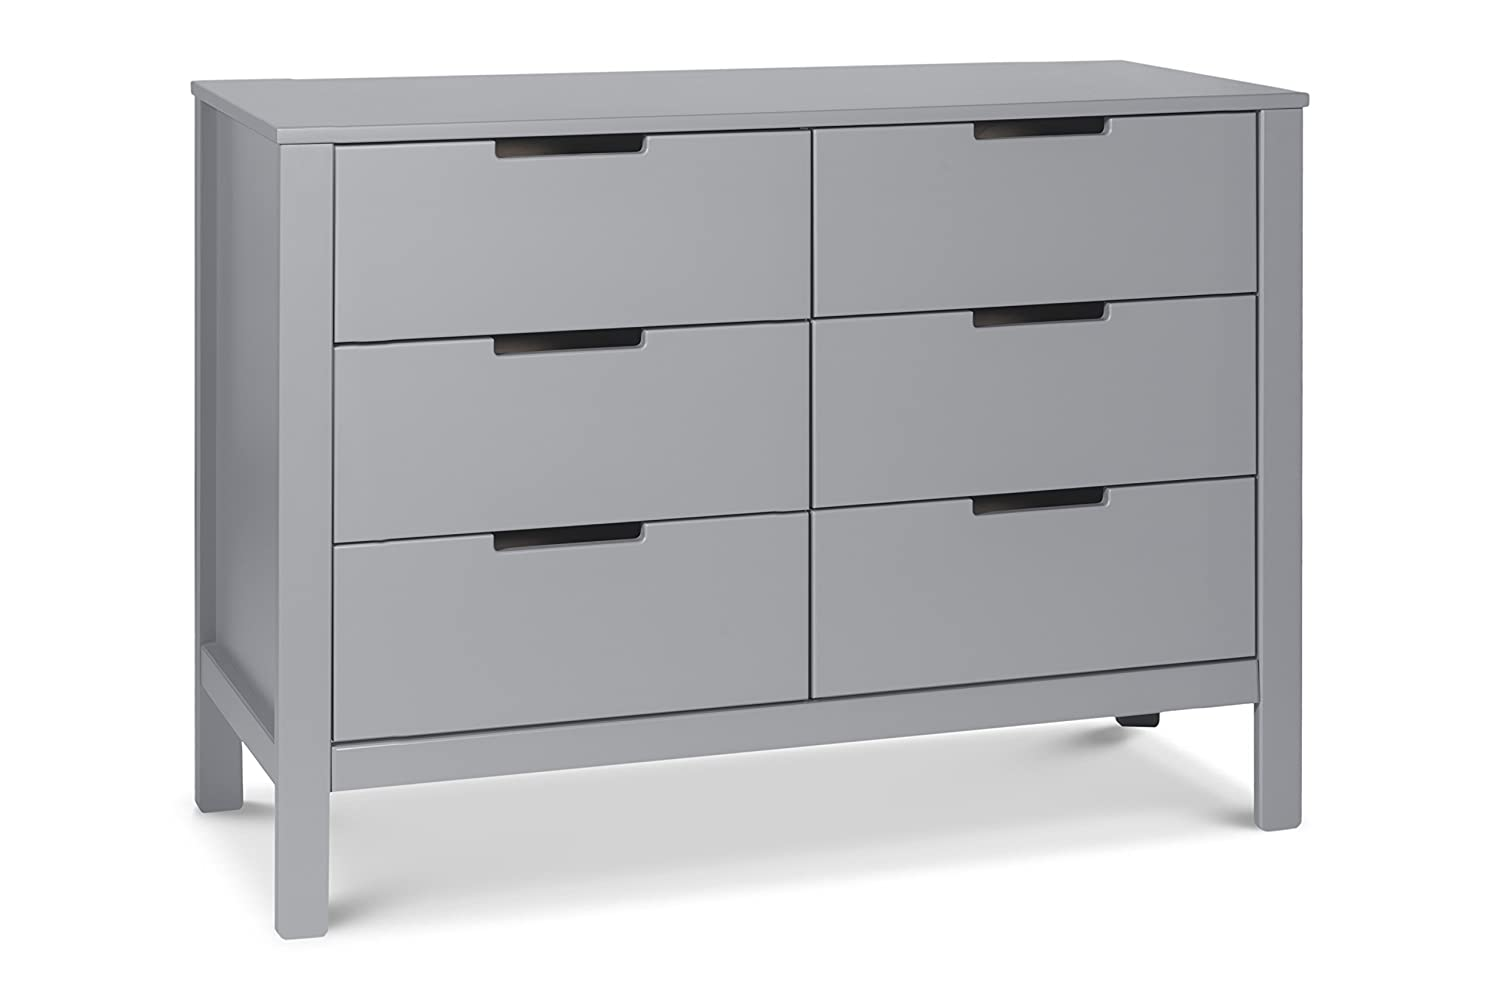 Carter's by Davinci Colby 6 Drawer Dresser, Gray DaVinci - DROPSHIP F11926G